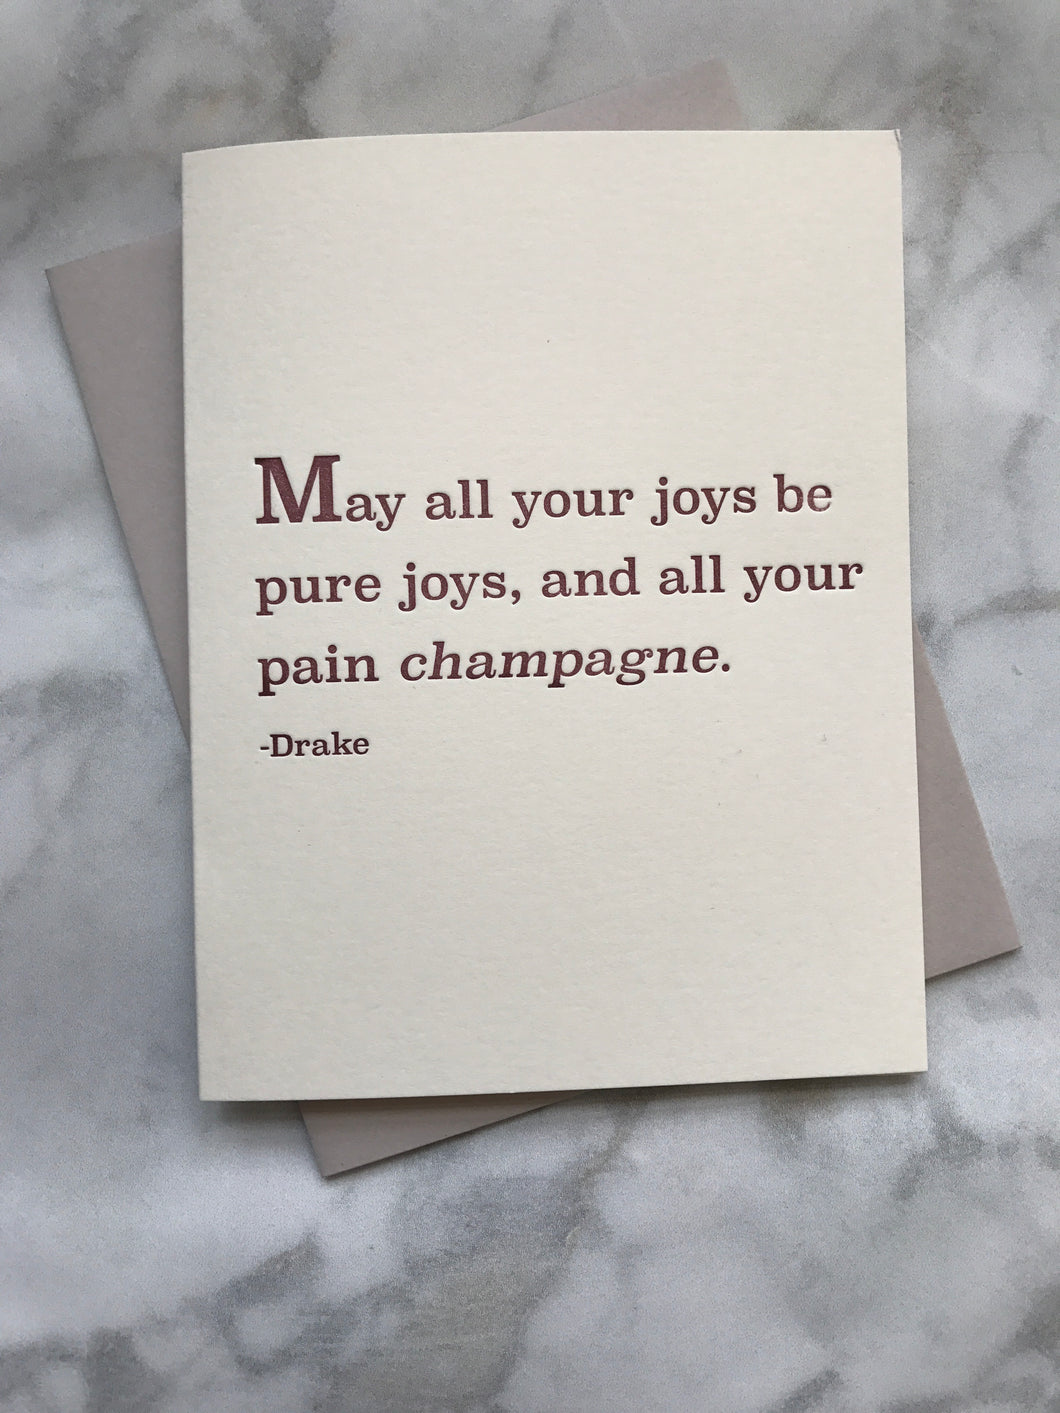 May all your joys be ... champagne.